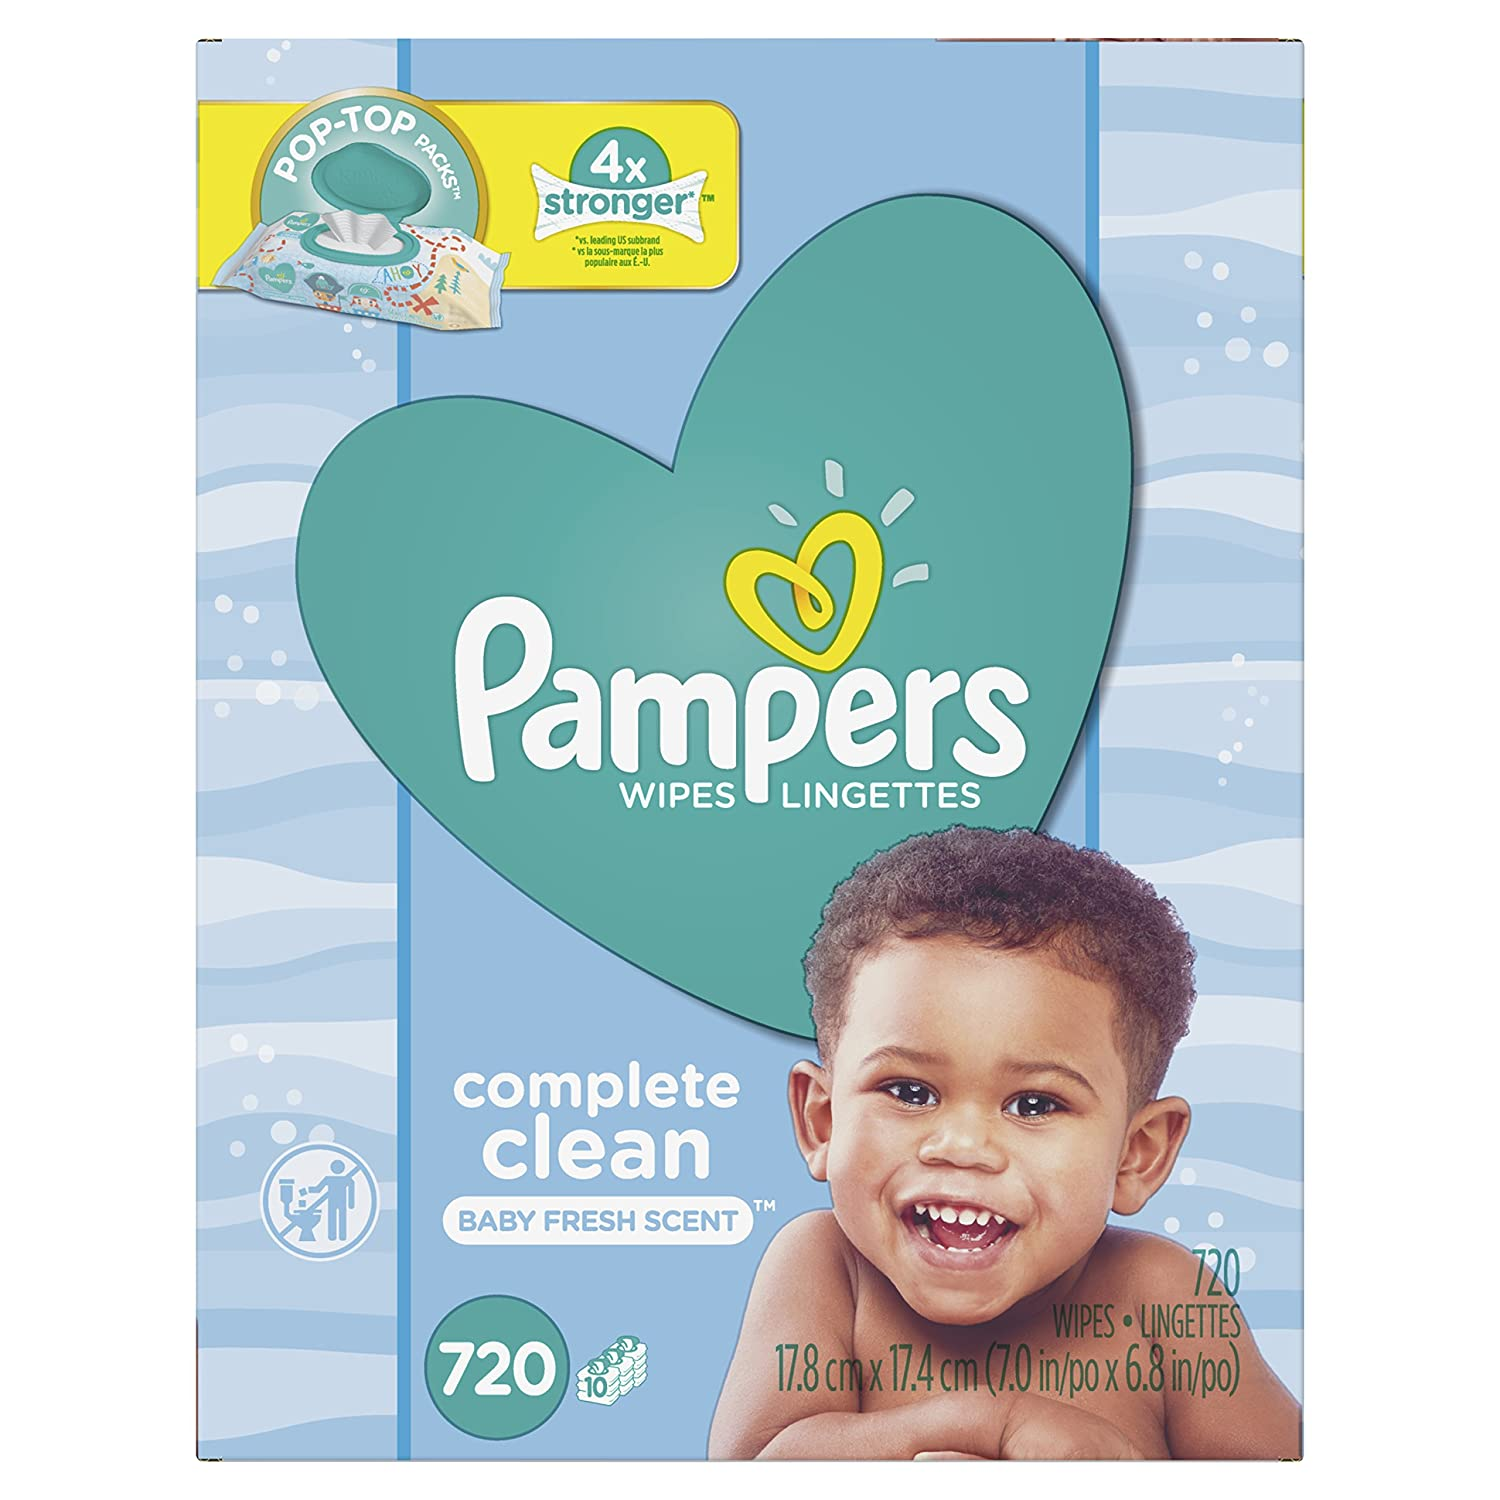 Pampers Baby Wipes Complete Clean SCENTED 10X Pop-Top, 720 Count Procter and Gamble